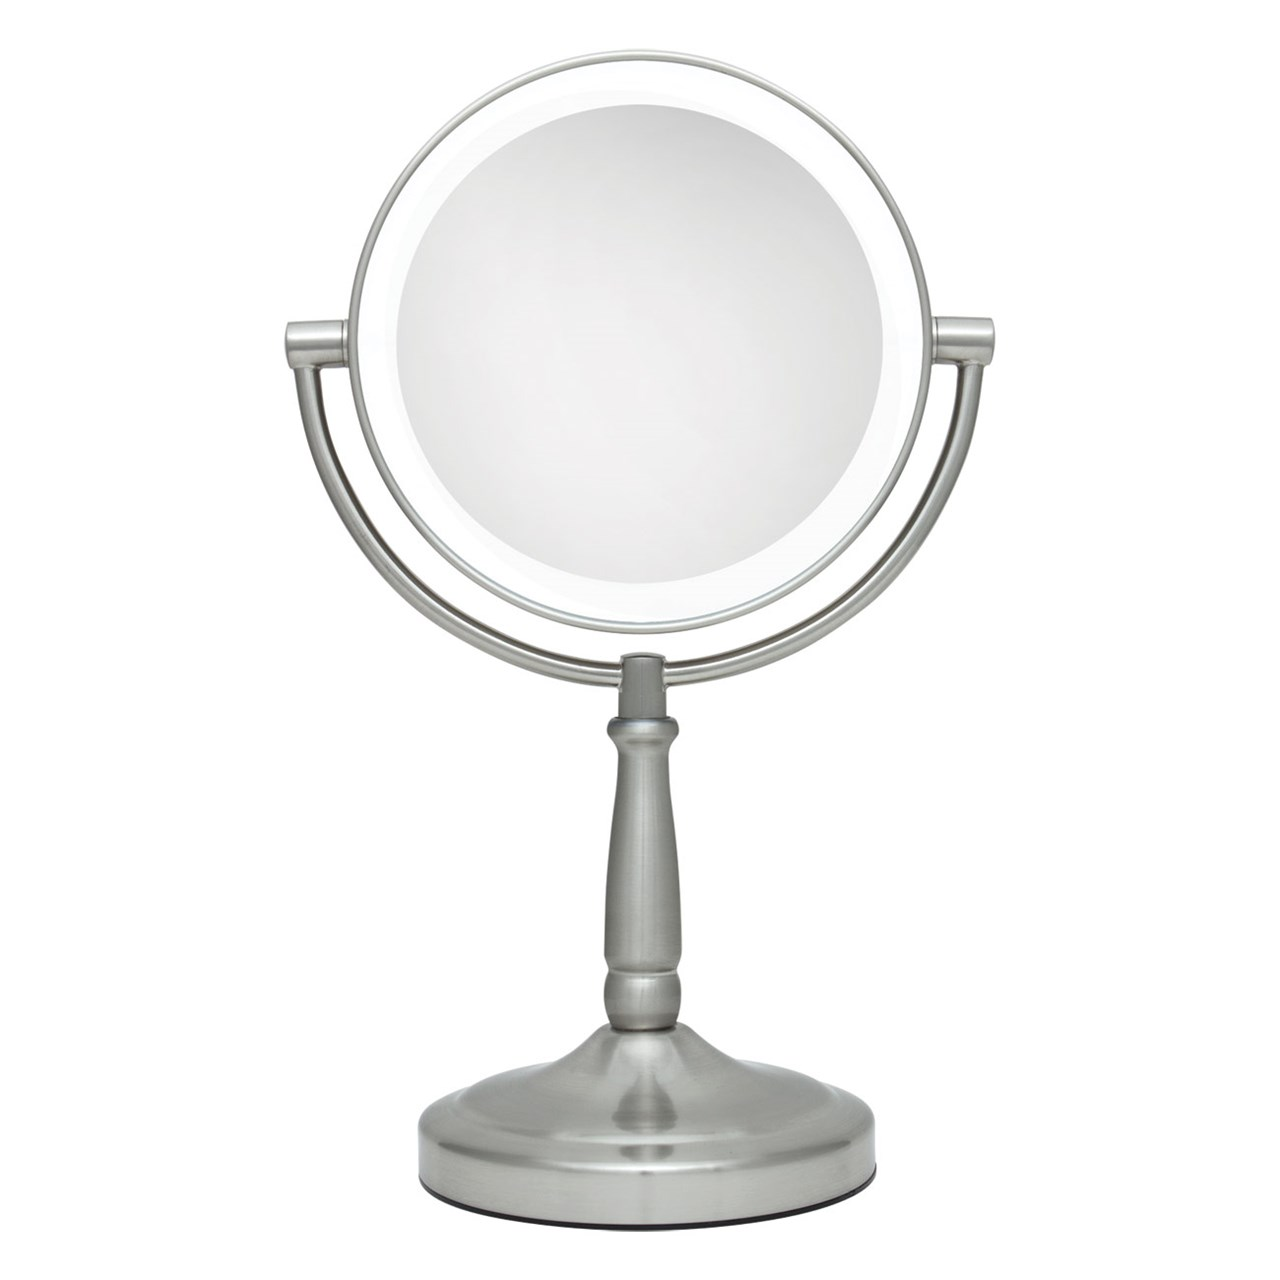 Maxiaids Cordless Led Lighted Vanity Mirror 10x 1x